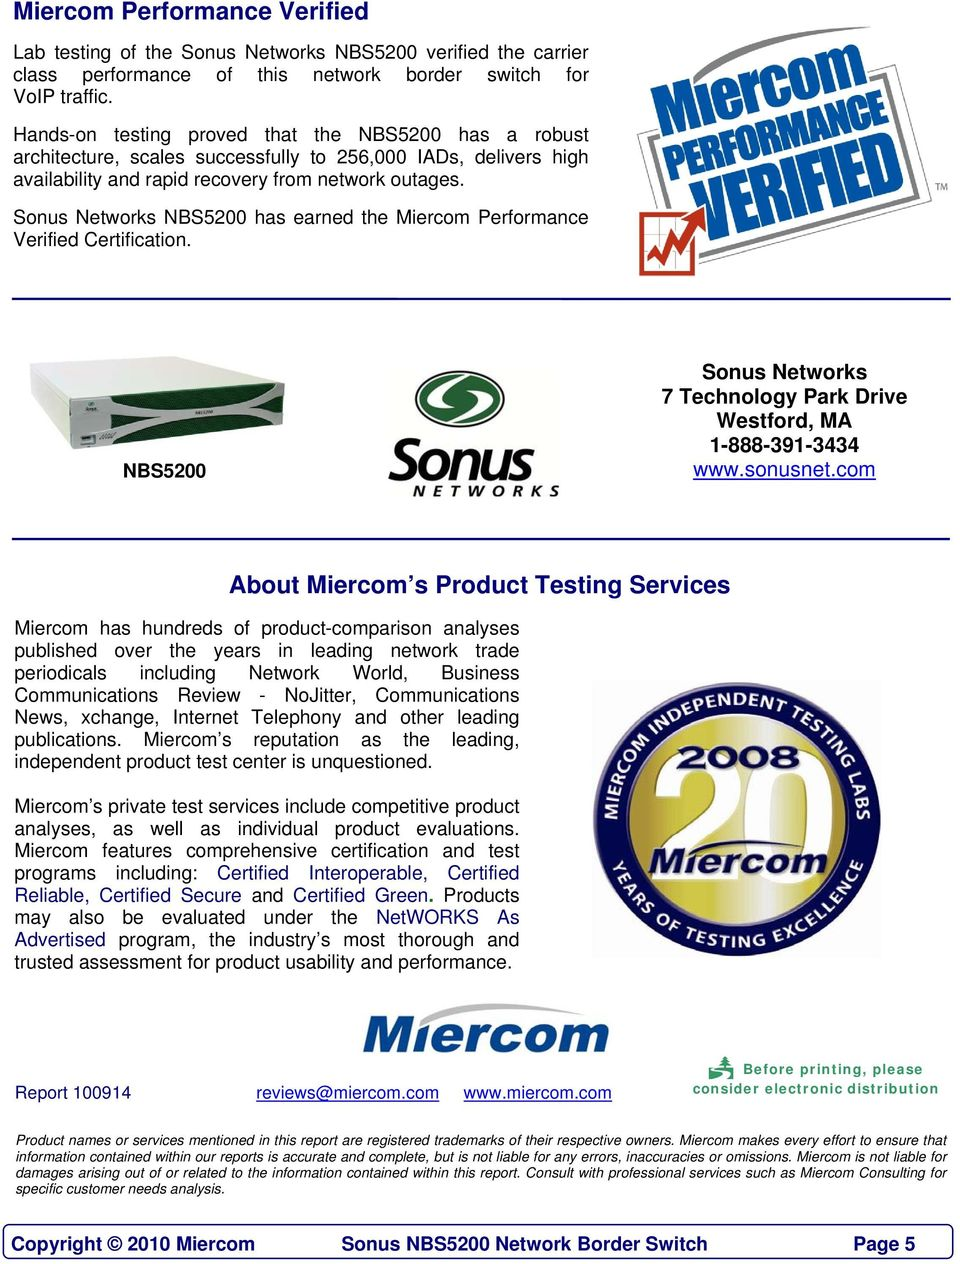 Sonus Networks NBS5200 has earned the Miercom Performance Verified Certification. NBS5200 Sonus Networks 7 Technology Park Drive Westford, MA 1-888-391-3434 www.sonusnet.